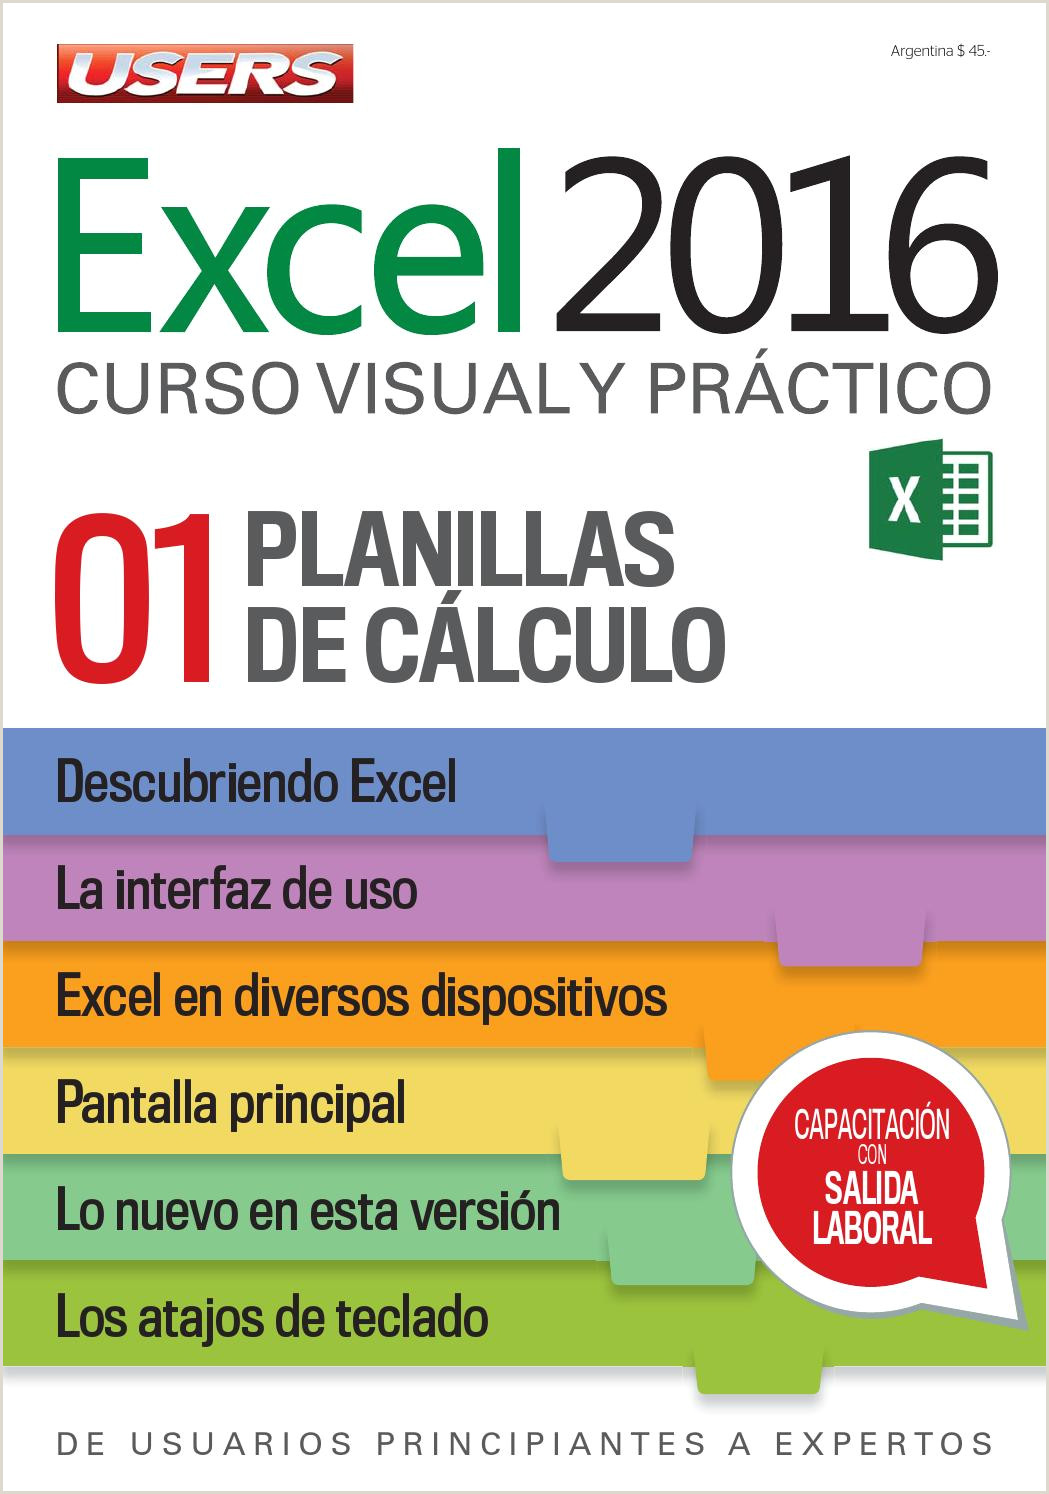 Excel 2016 by RedUSERS issuu